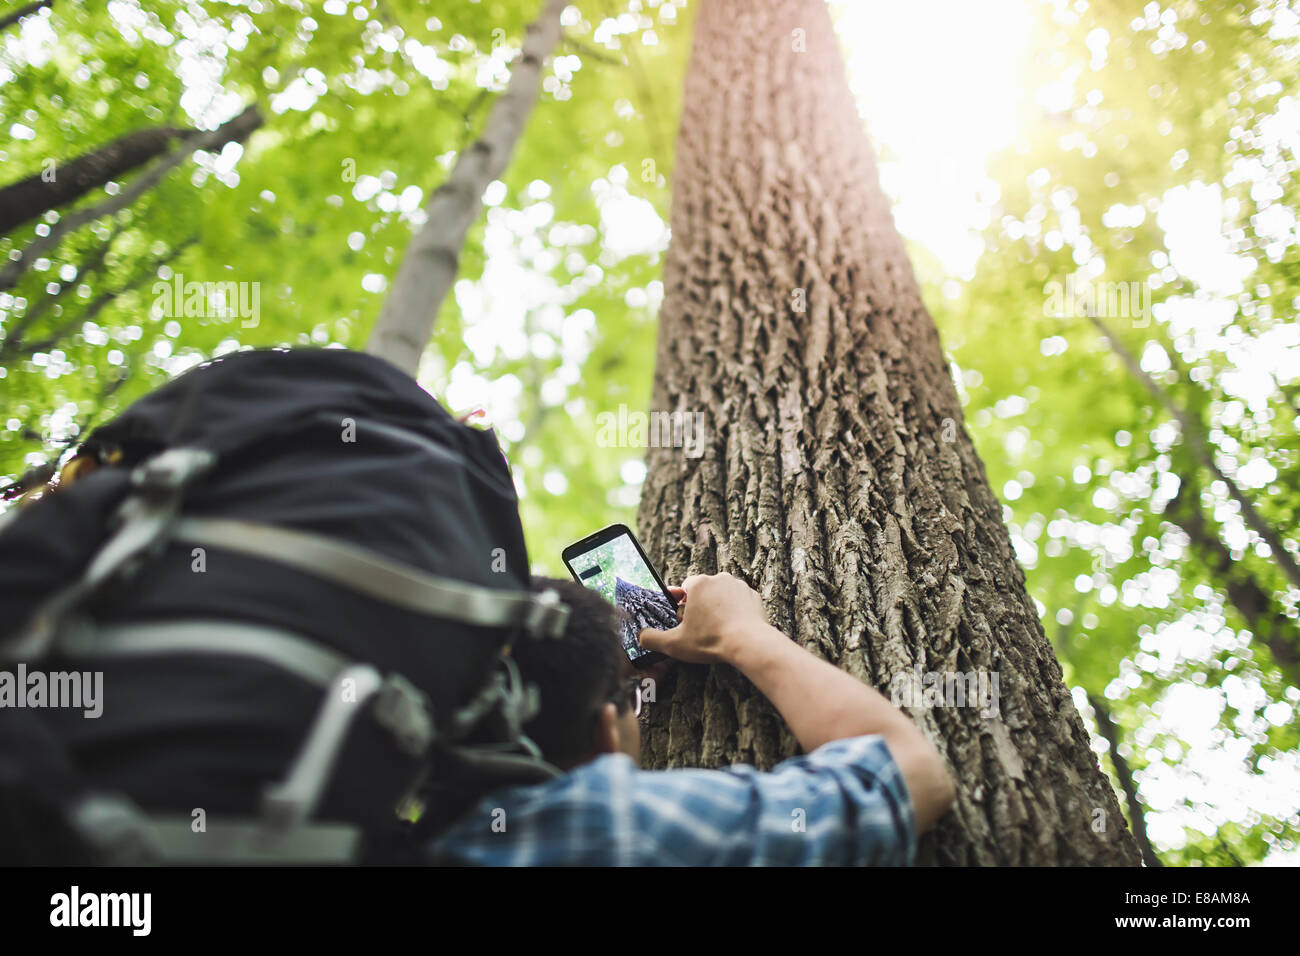 Man taking photo of tree trunk with camera phone, low angle Stock Photo